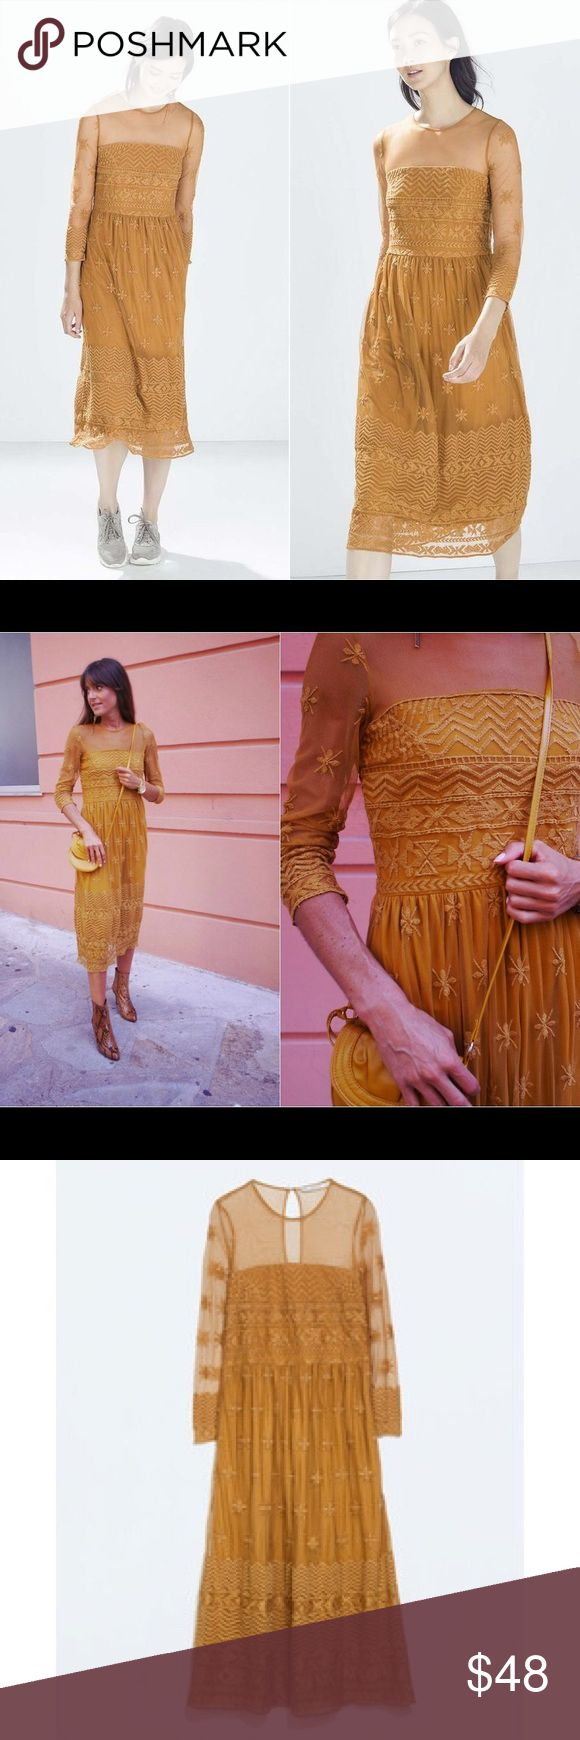 104 best imma bridesmaid beotch images on pinterest mustard zara mustard yellow embroidered lace midi dress ombrellifo Image collections